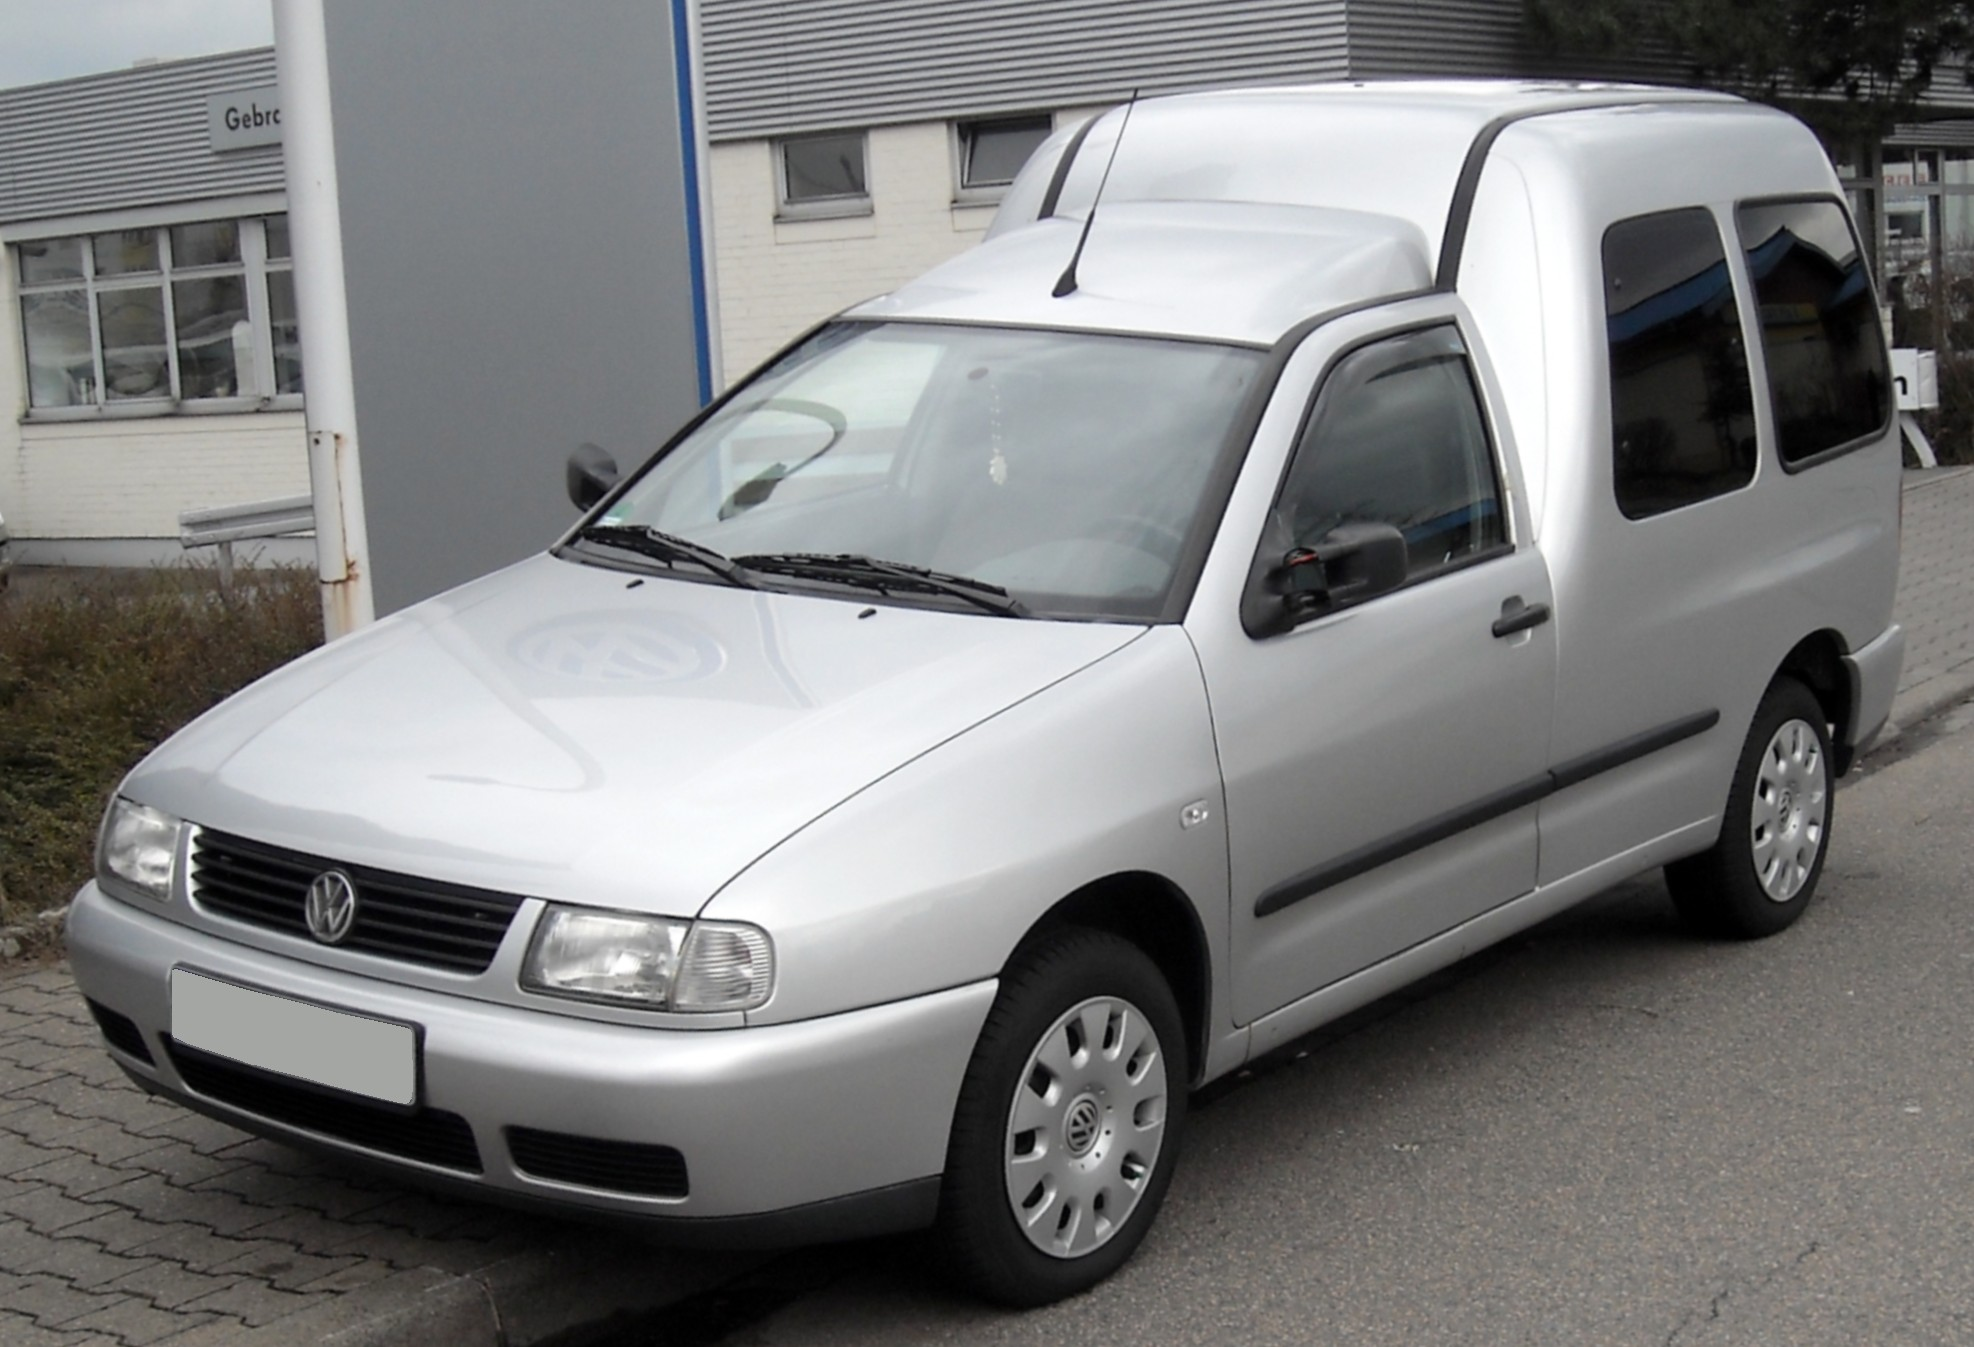 Volkswagen Caddy 1.7 2000 photo - 1